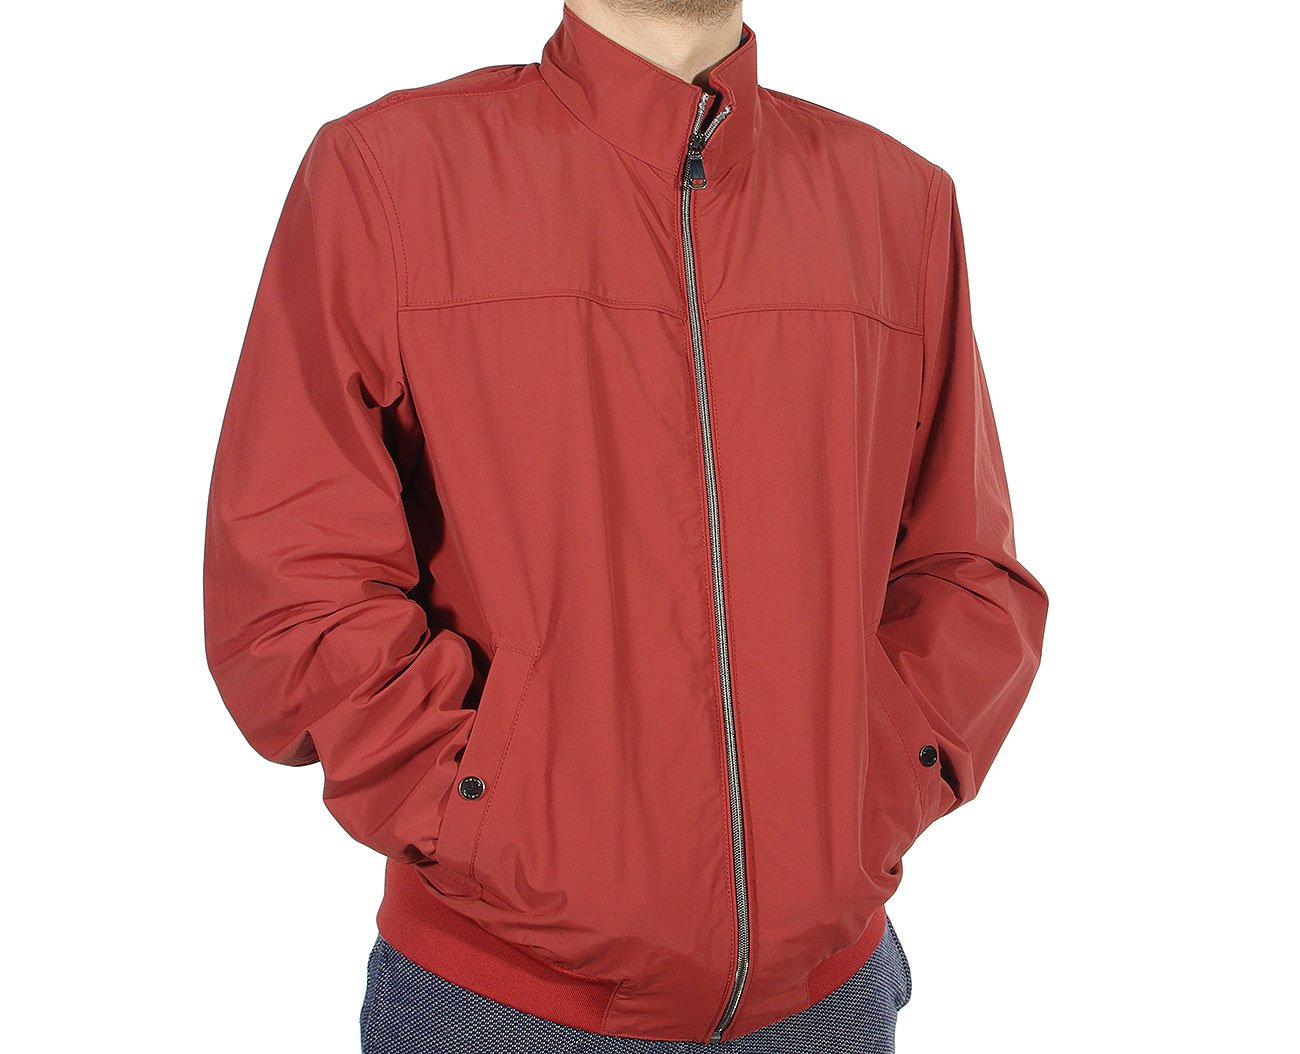 GEOX M8220D kurtka man jacket rosewood red